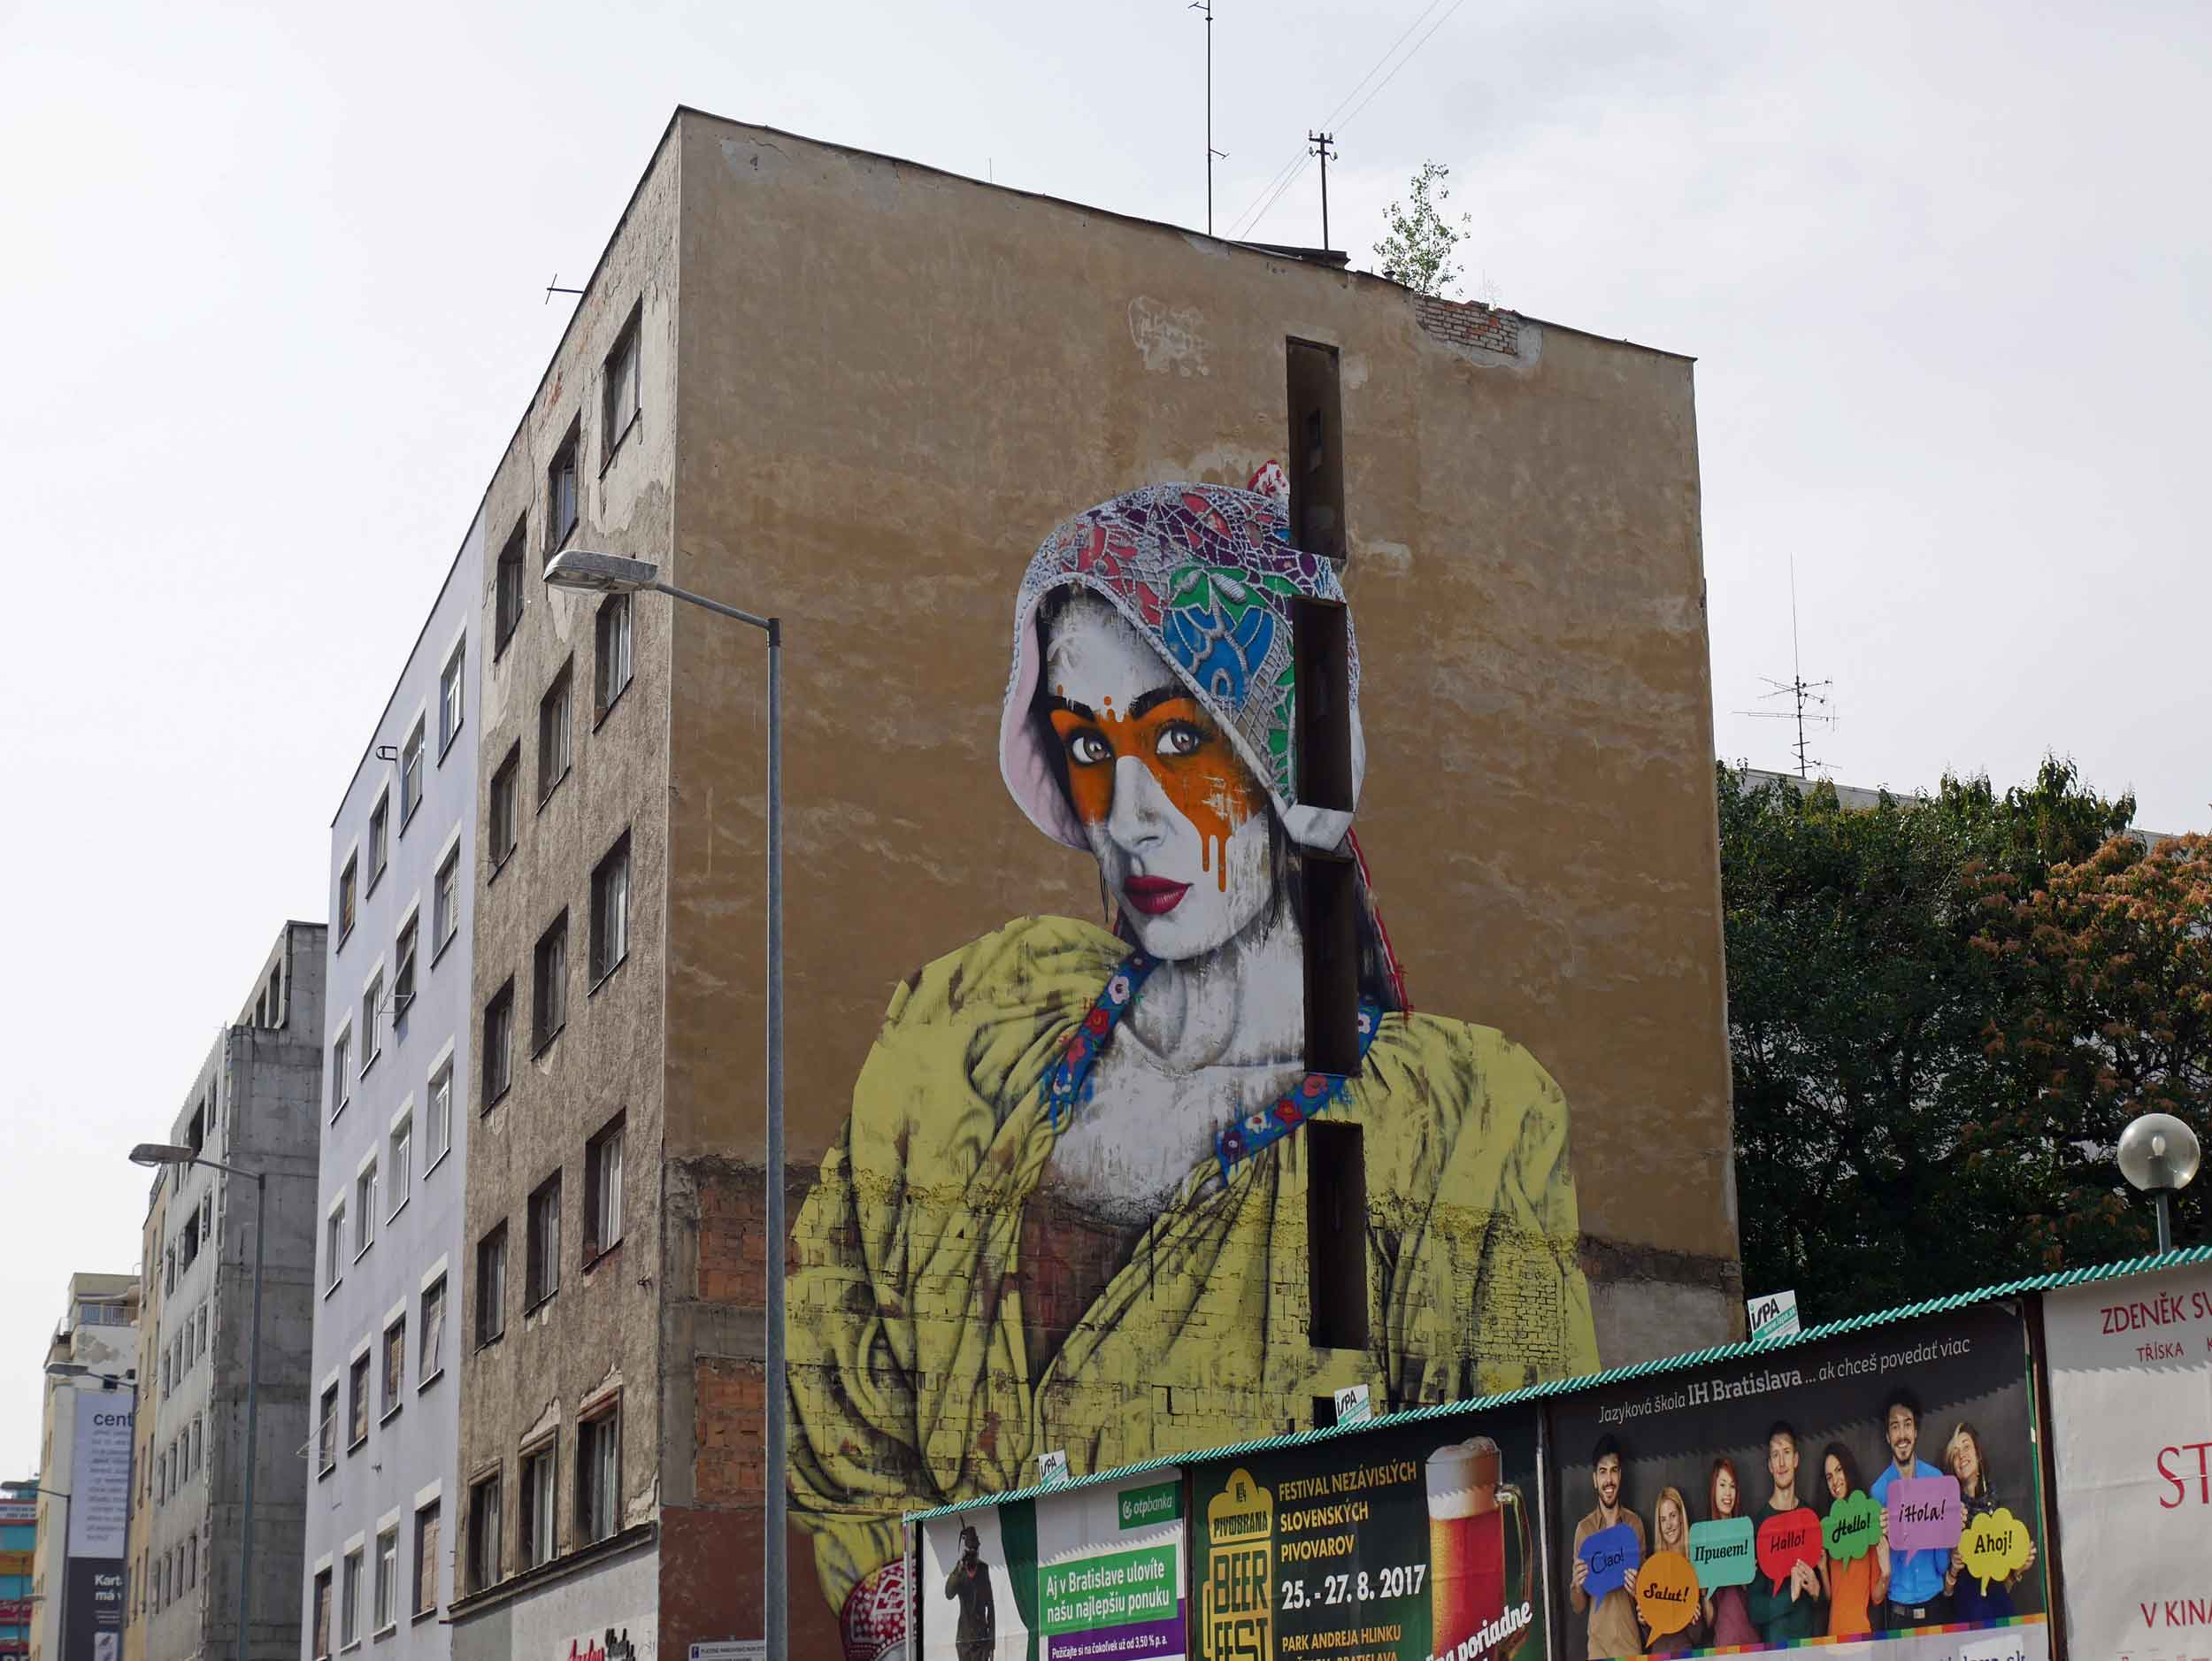 Large, beautiful murals adorn the city's walls as part of the annual Bratislava Street Arts festival, spotlighting local, talented artists (Aug 27).